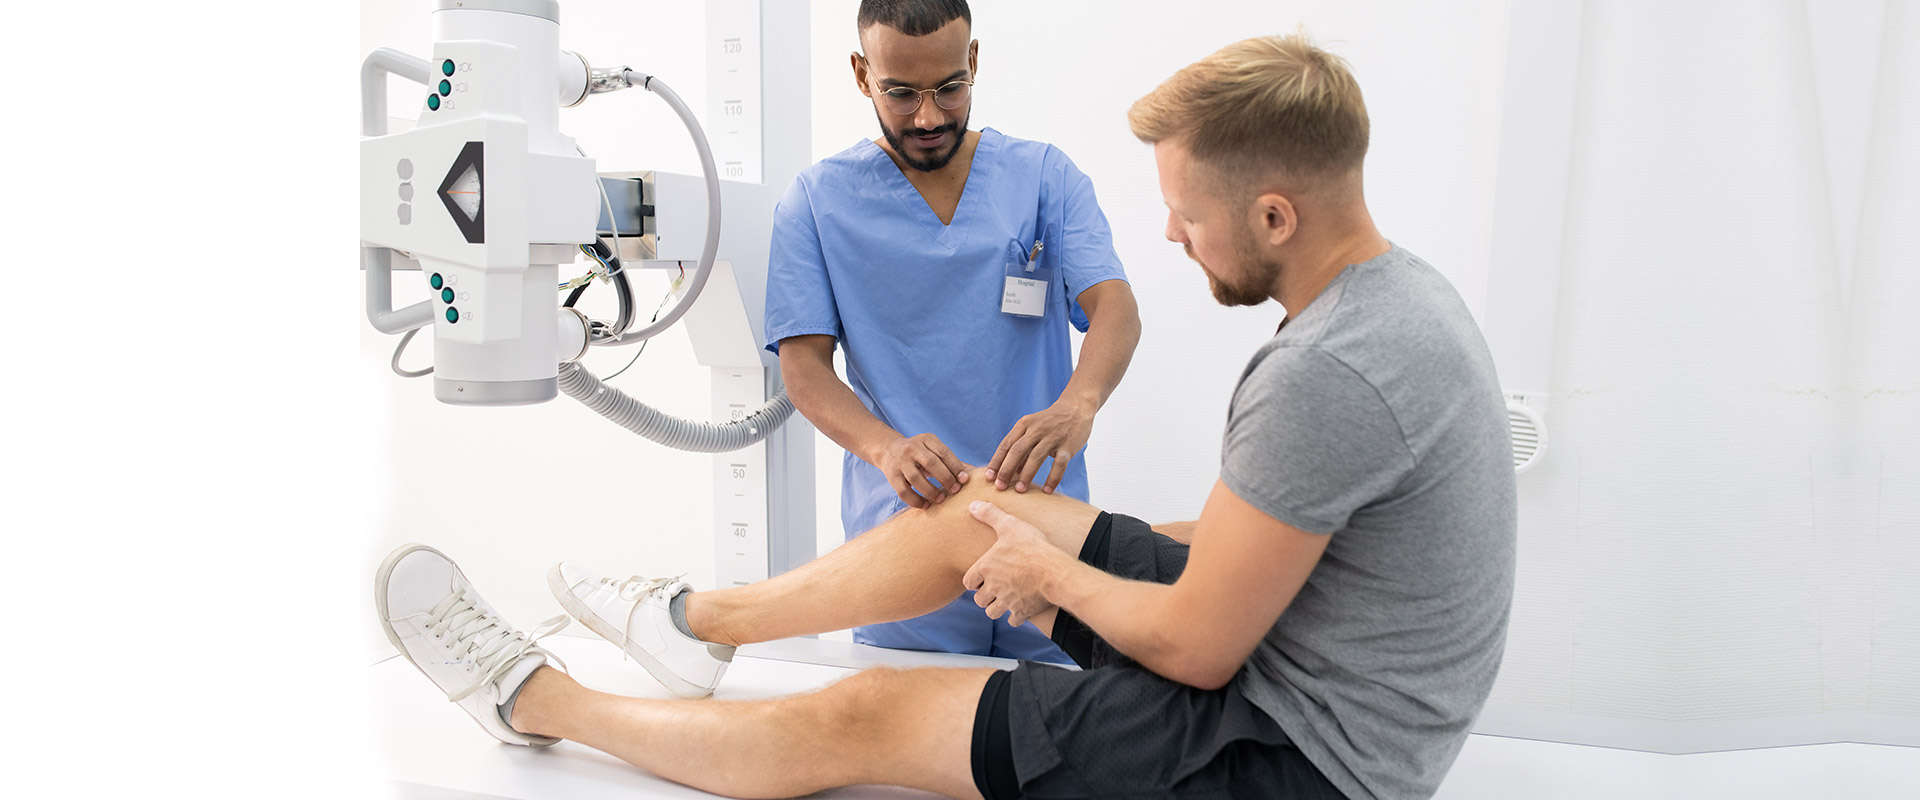 Best Orthopaedic Doctor in India | Orthopedic Doctor in Chennai image 1